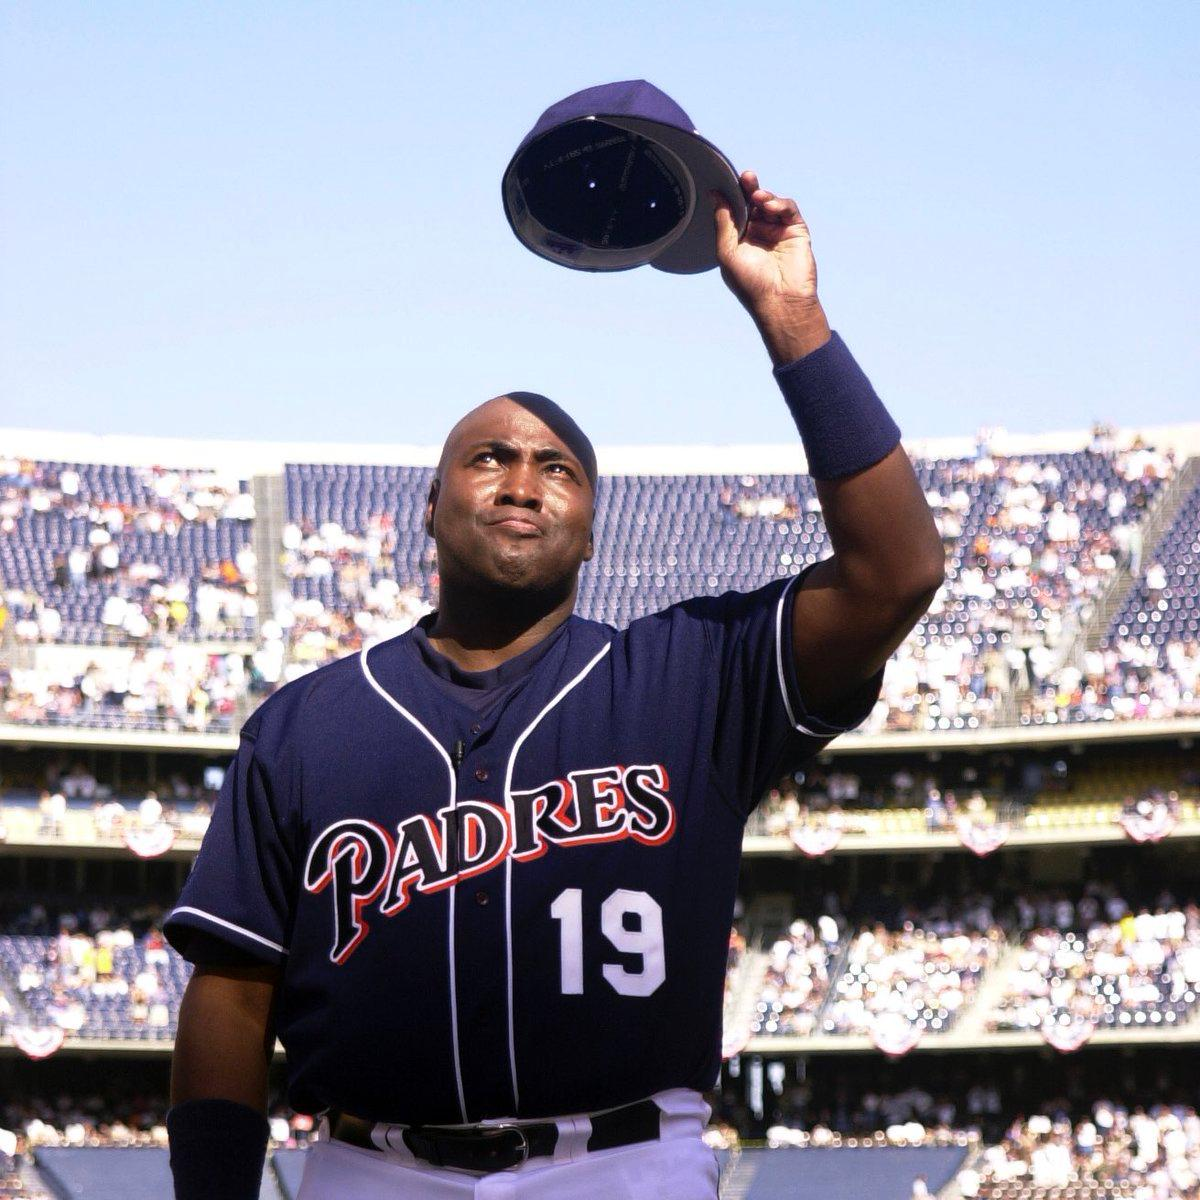 Mr. Padre was one of the most beloved players from San Diego Padres. Photo via @padres on Twitter.